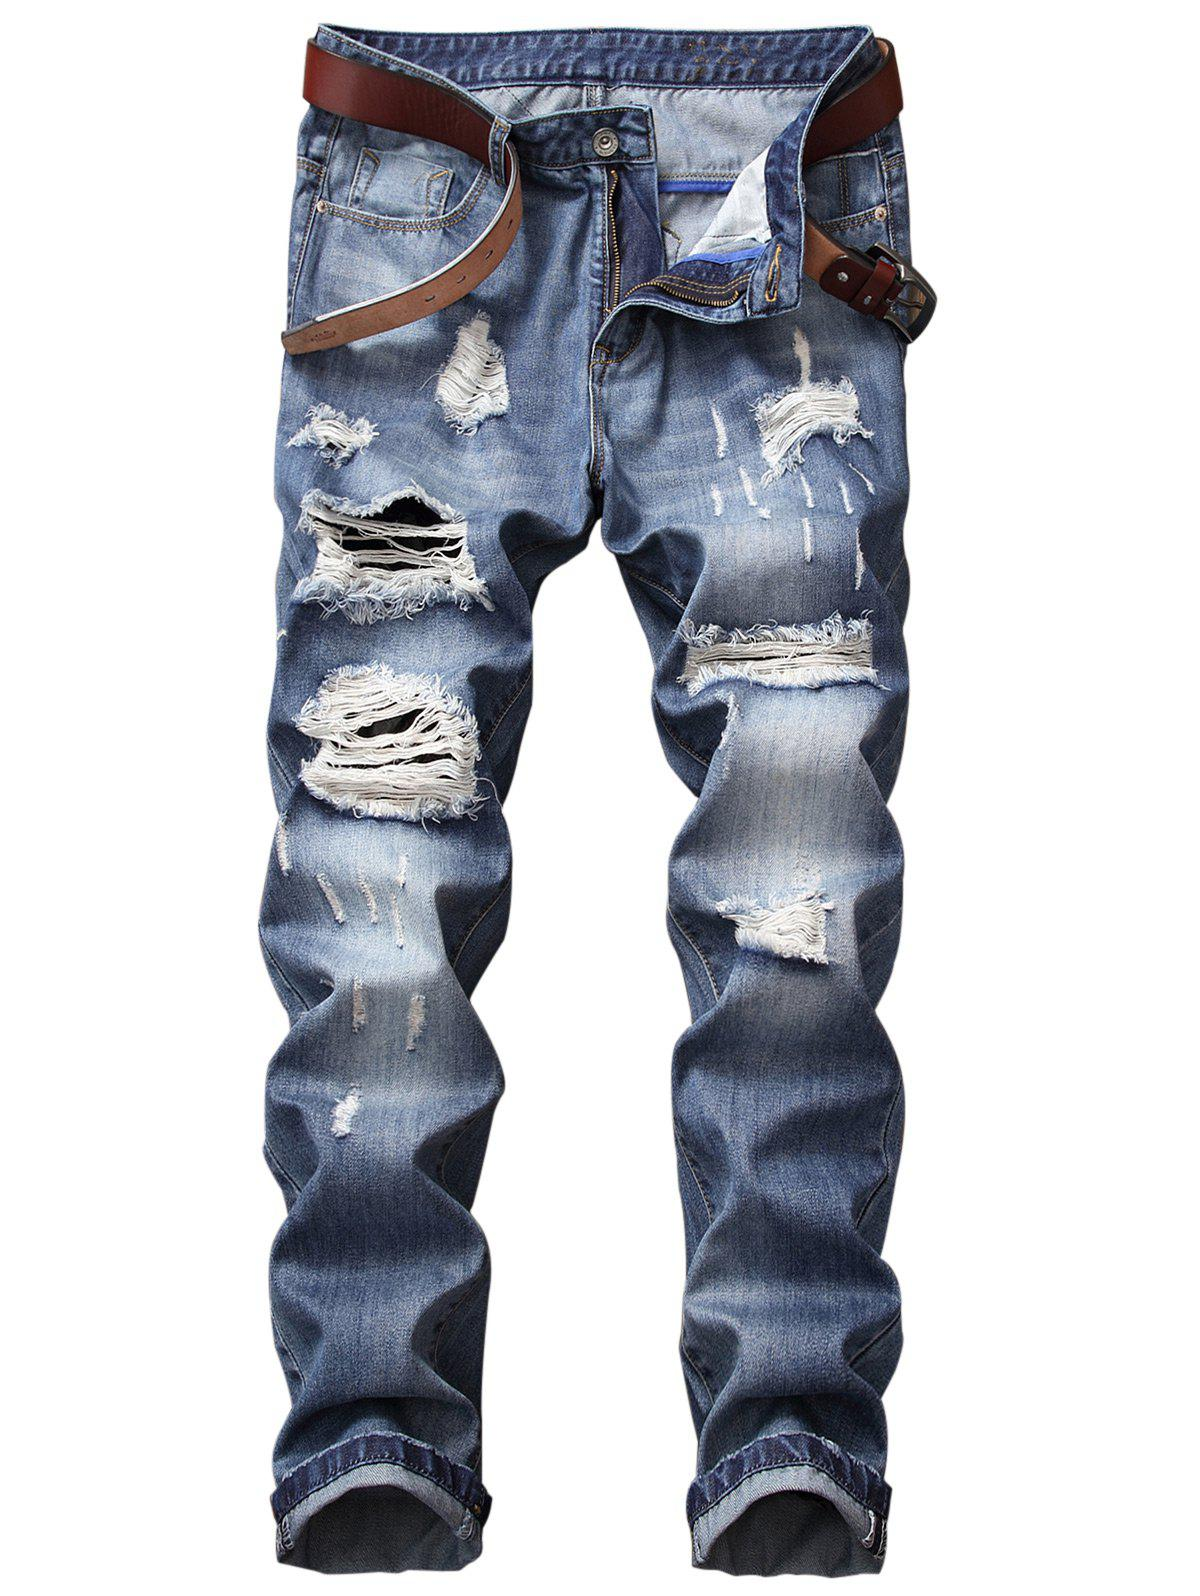 Bleached Effect Straight Leg Distressed Jeans straight leg distressed embroidered jeans